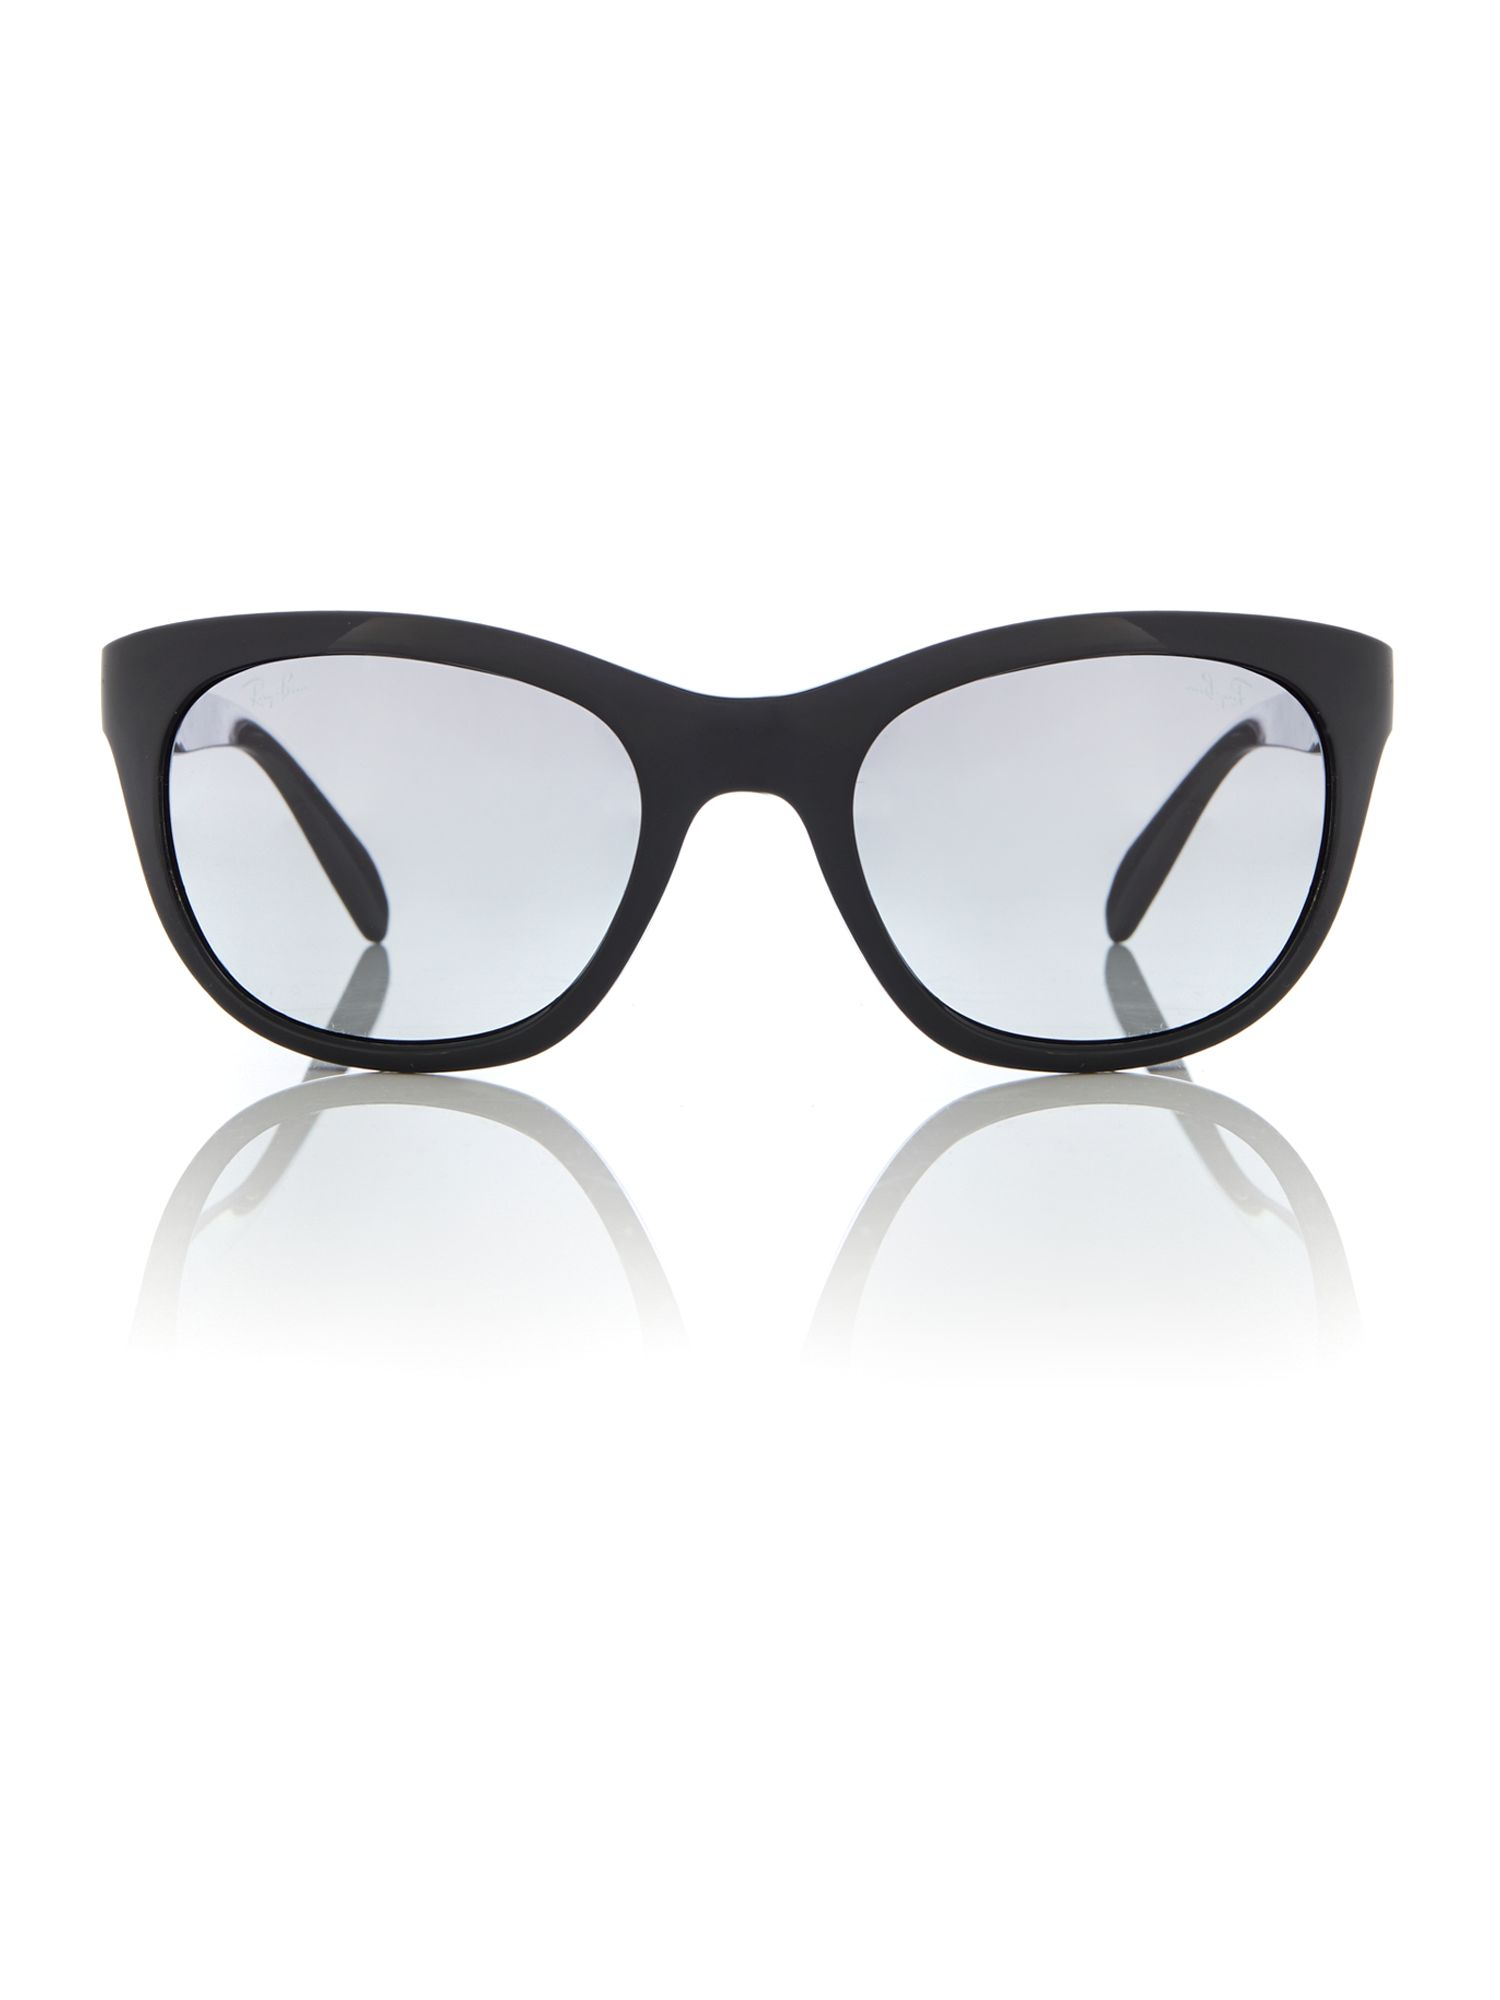 f8d1978fb56 ... 50% off ray ban 0rb4216 square sunglasses in black lyst 2951f 1c8d6